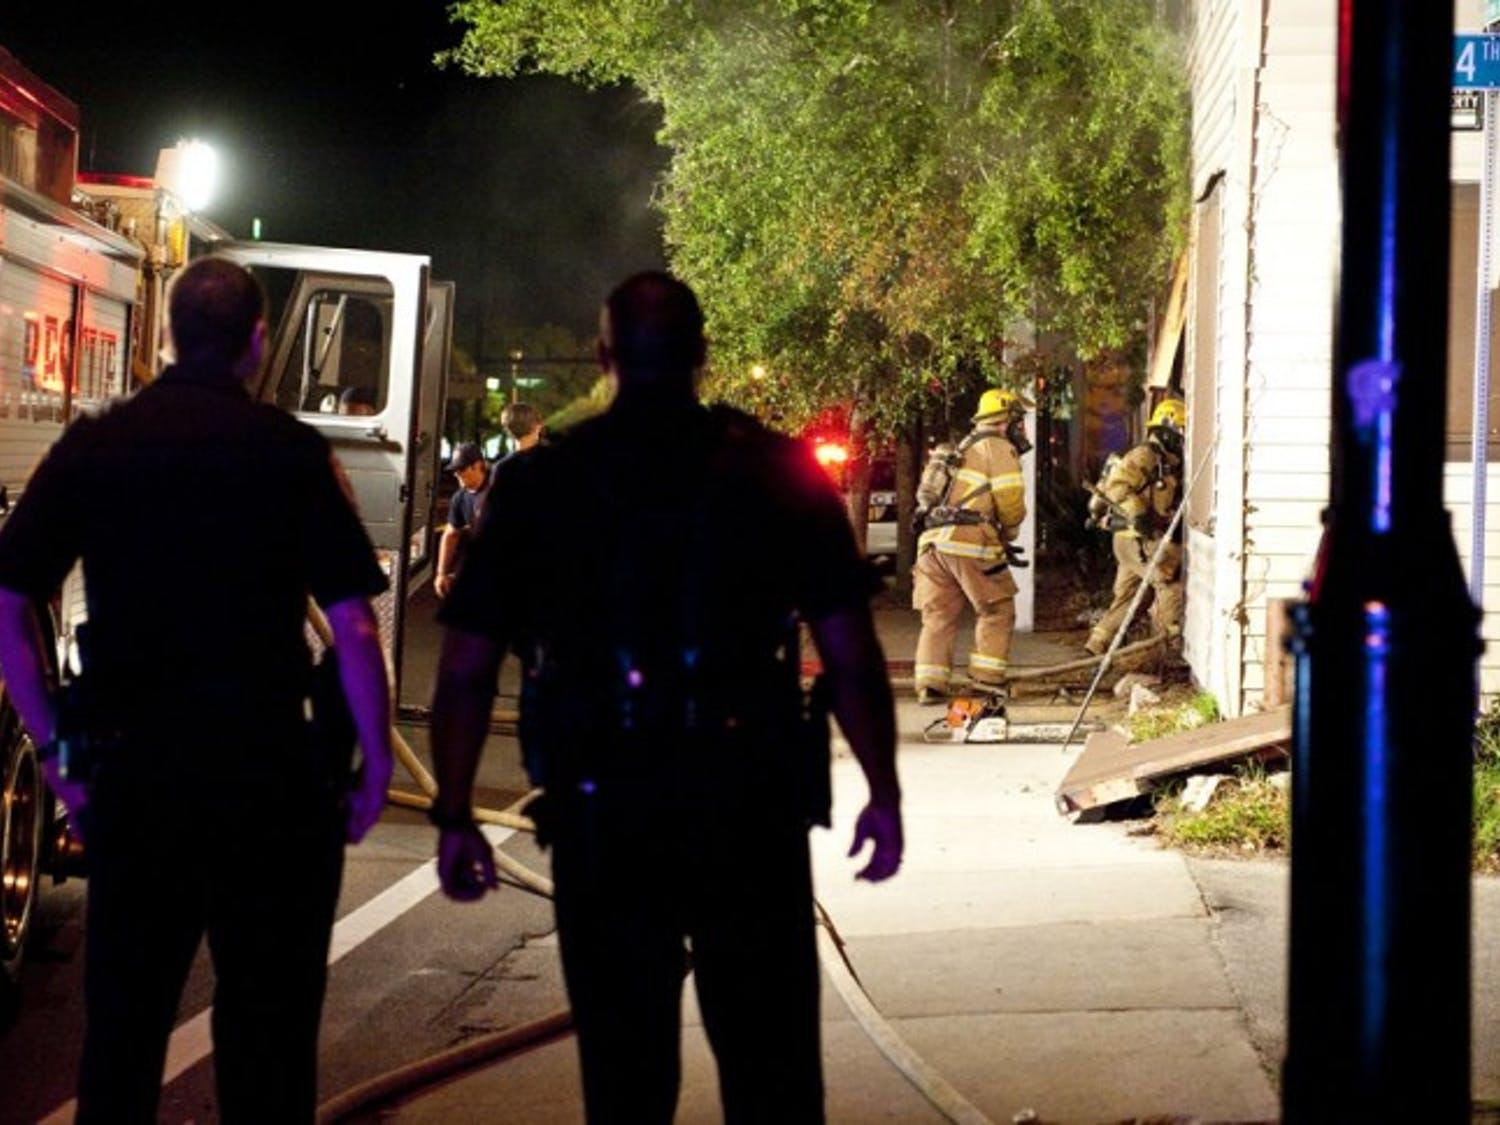 Gainesville Police officers look on as Gainesville Fire Rescue workers enter a building on Northwest 13th Street late Tuesday night.